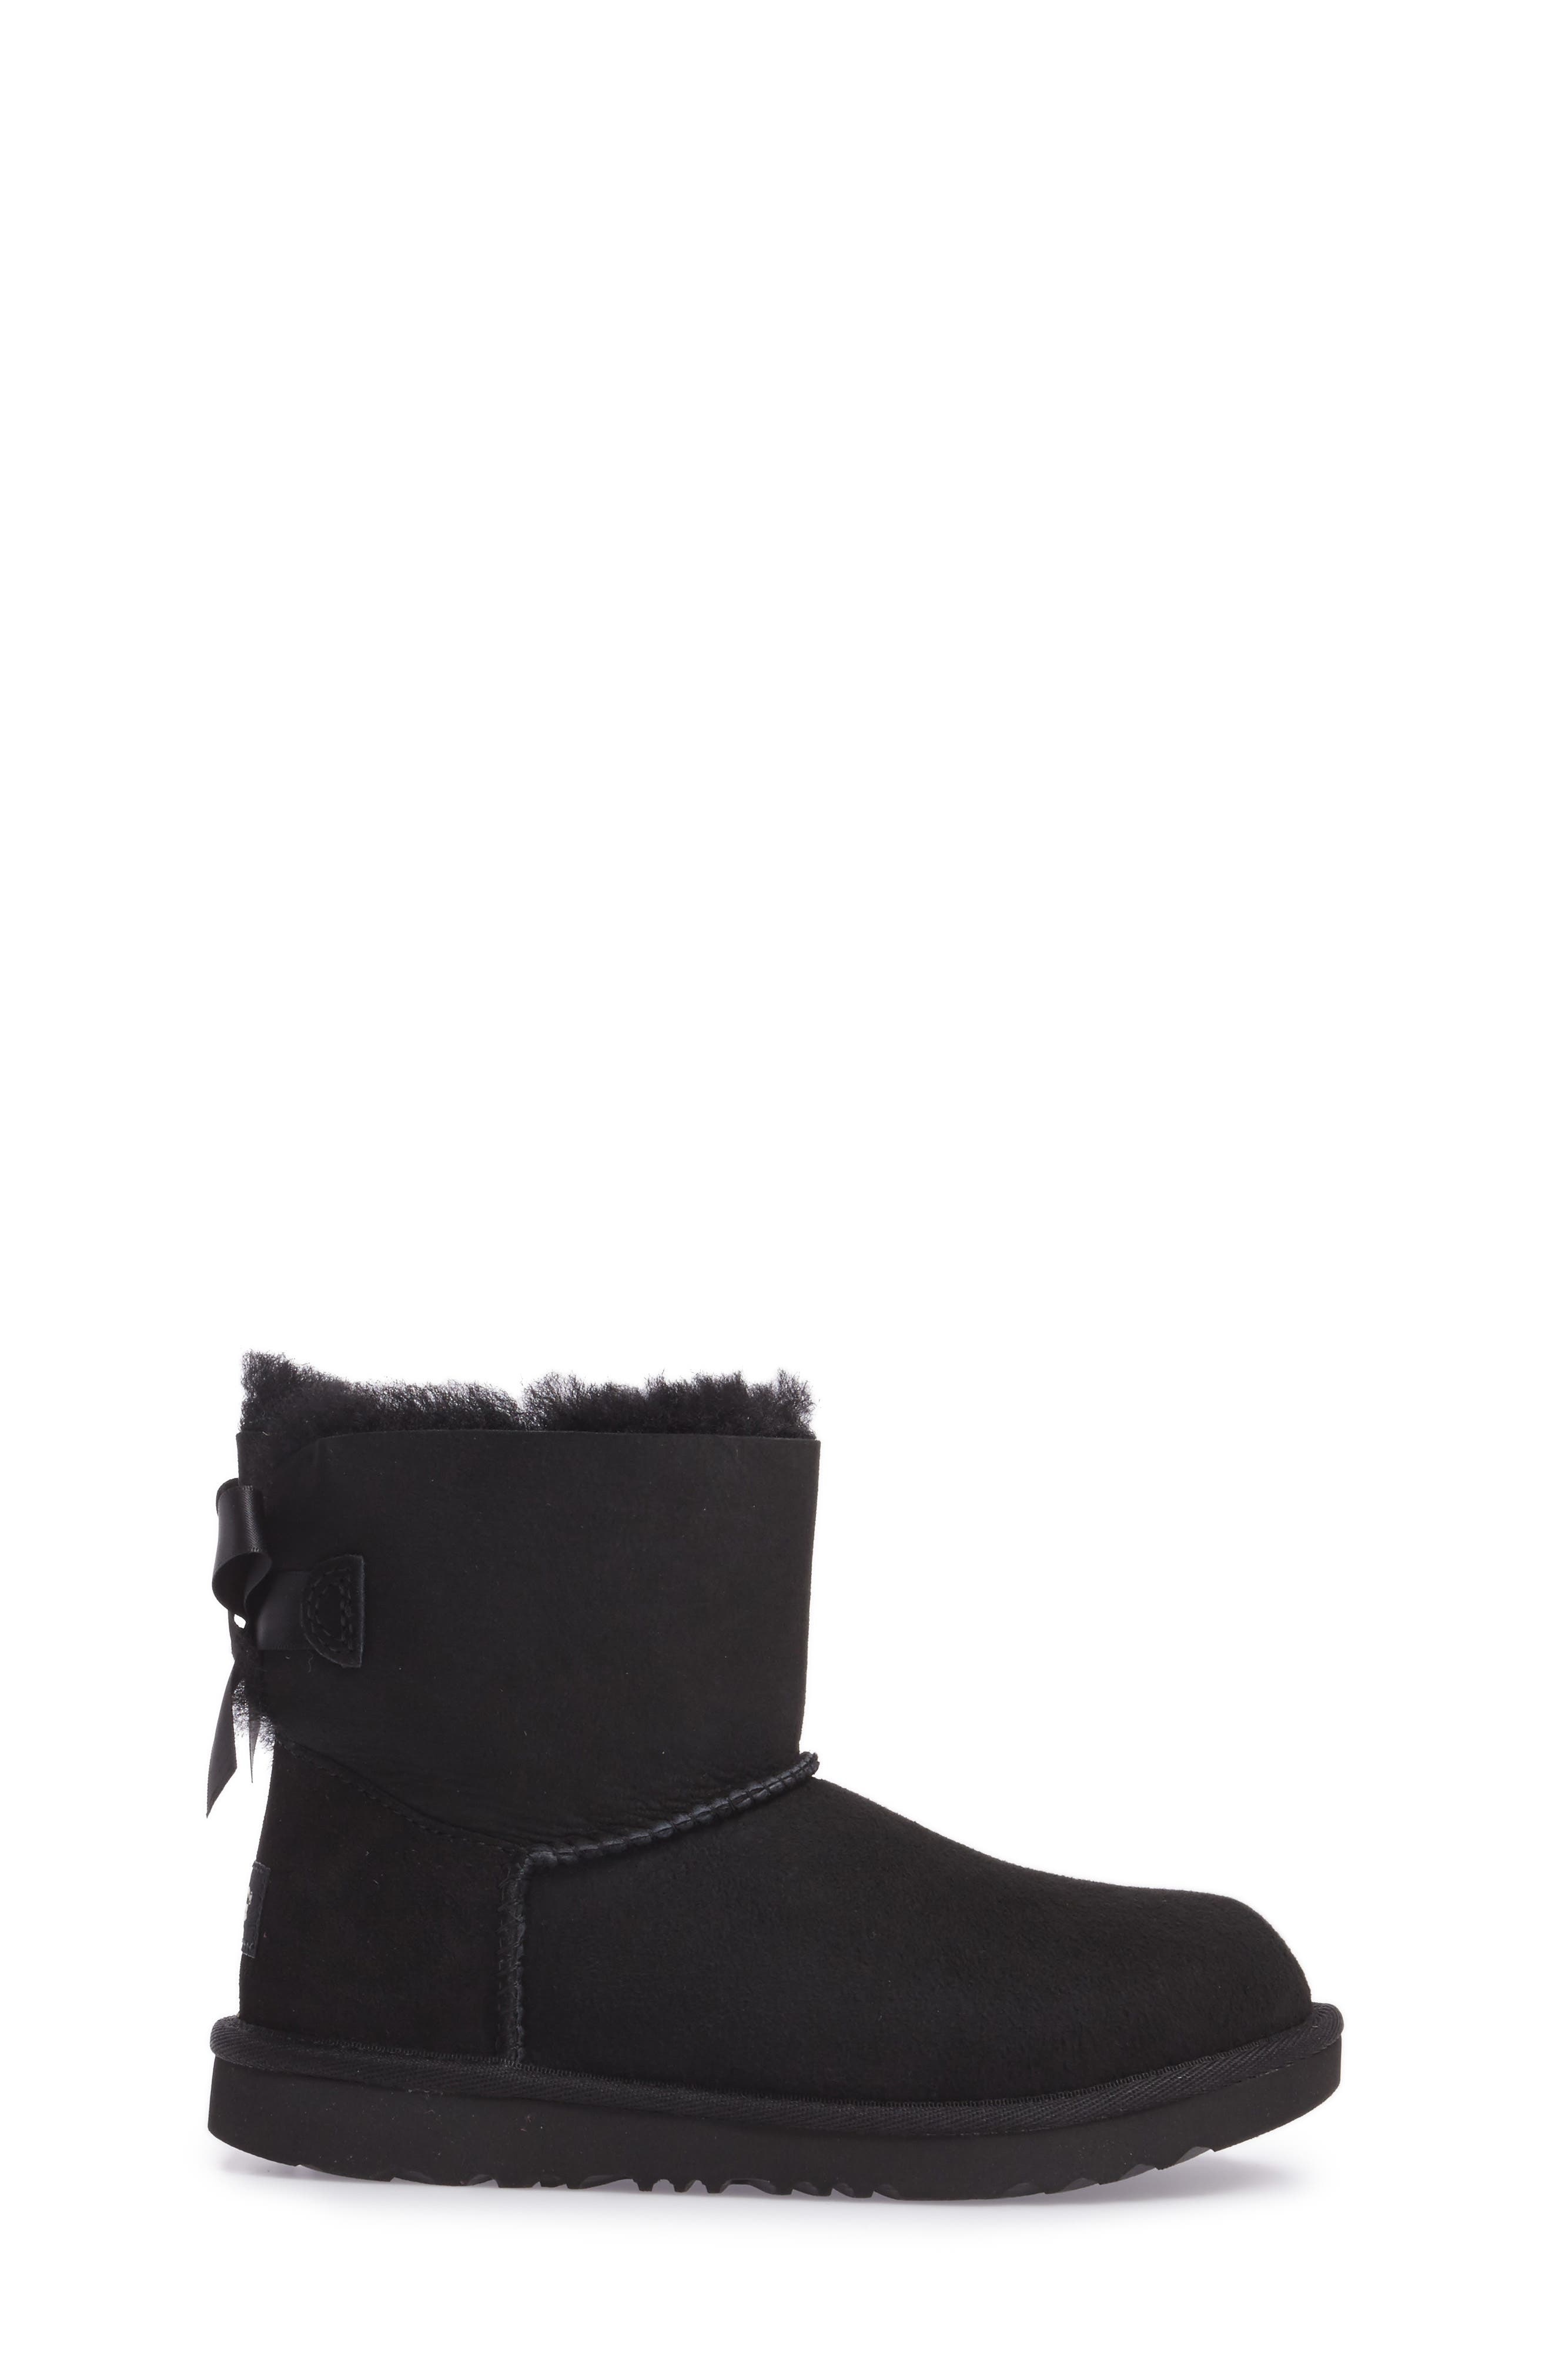 UGG<SUP>®</SUP>, Mini Bailey Bow II Water Resistant Boot, Alternate thumbnail 3, color, BLACK